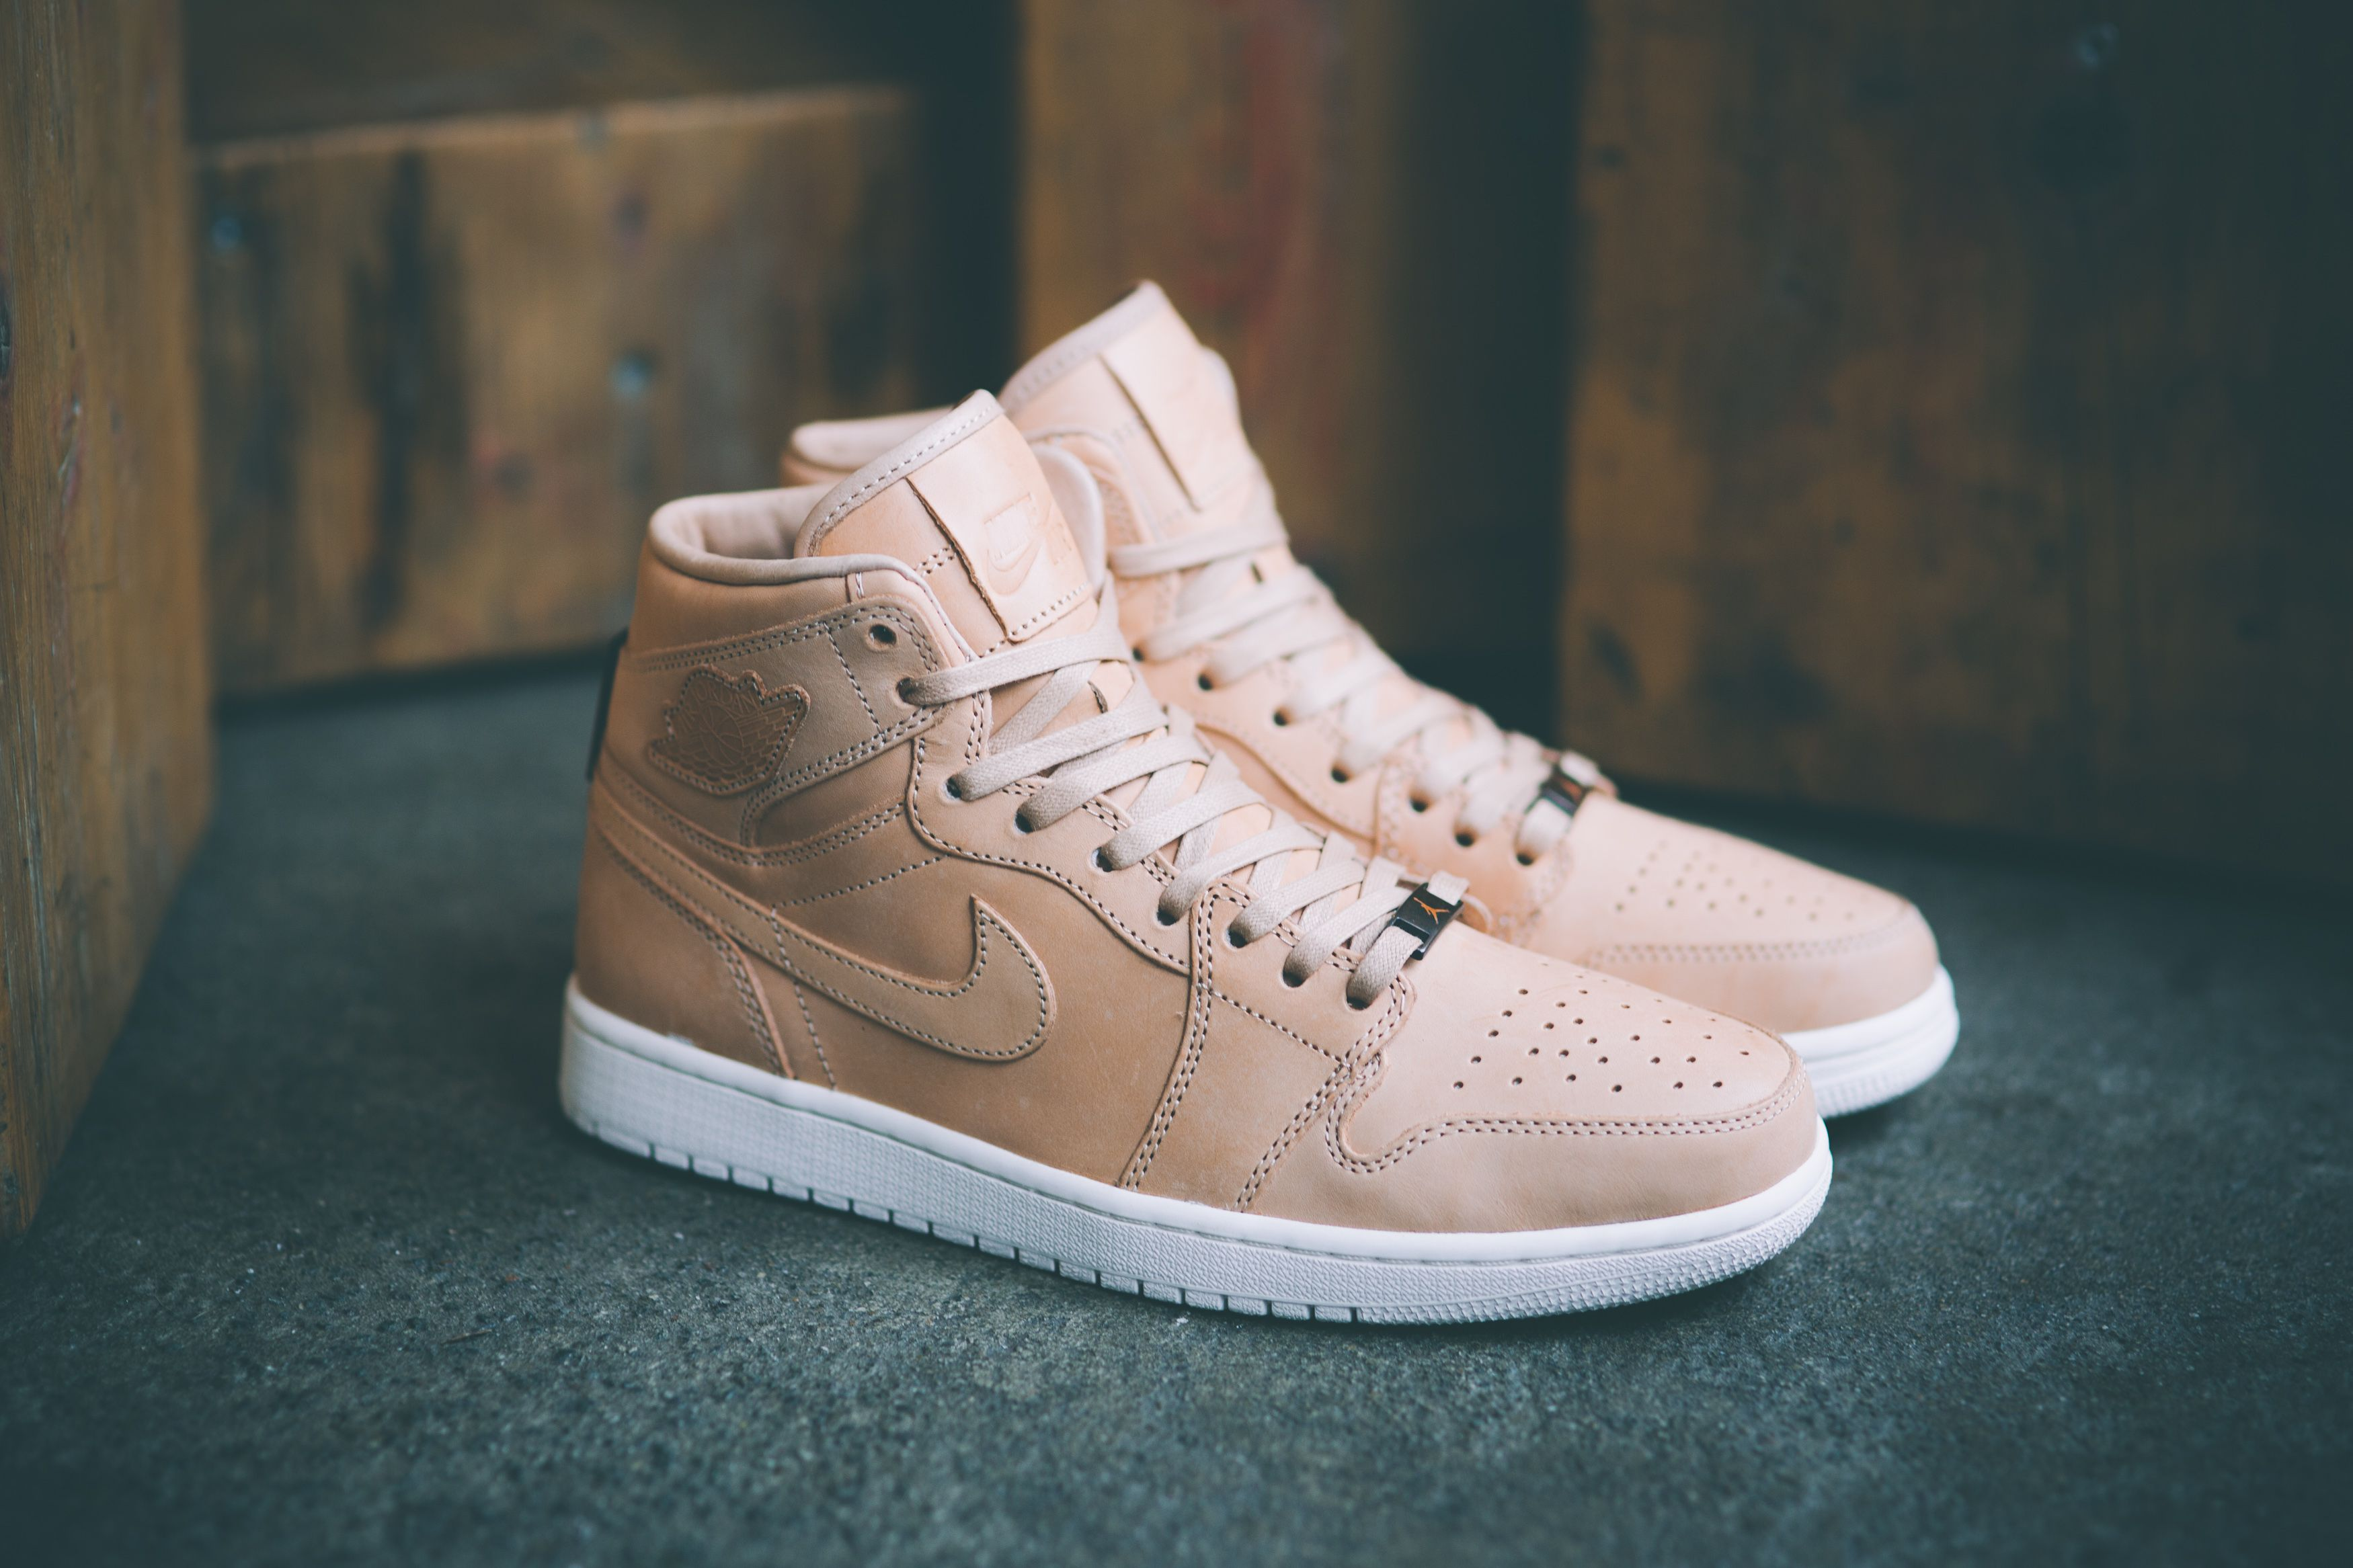 Air Jordan 1 Vachetta Tan Pinnacle